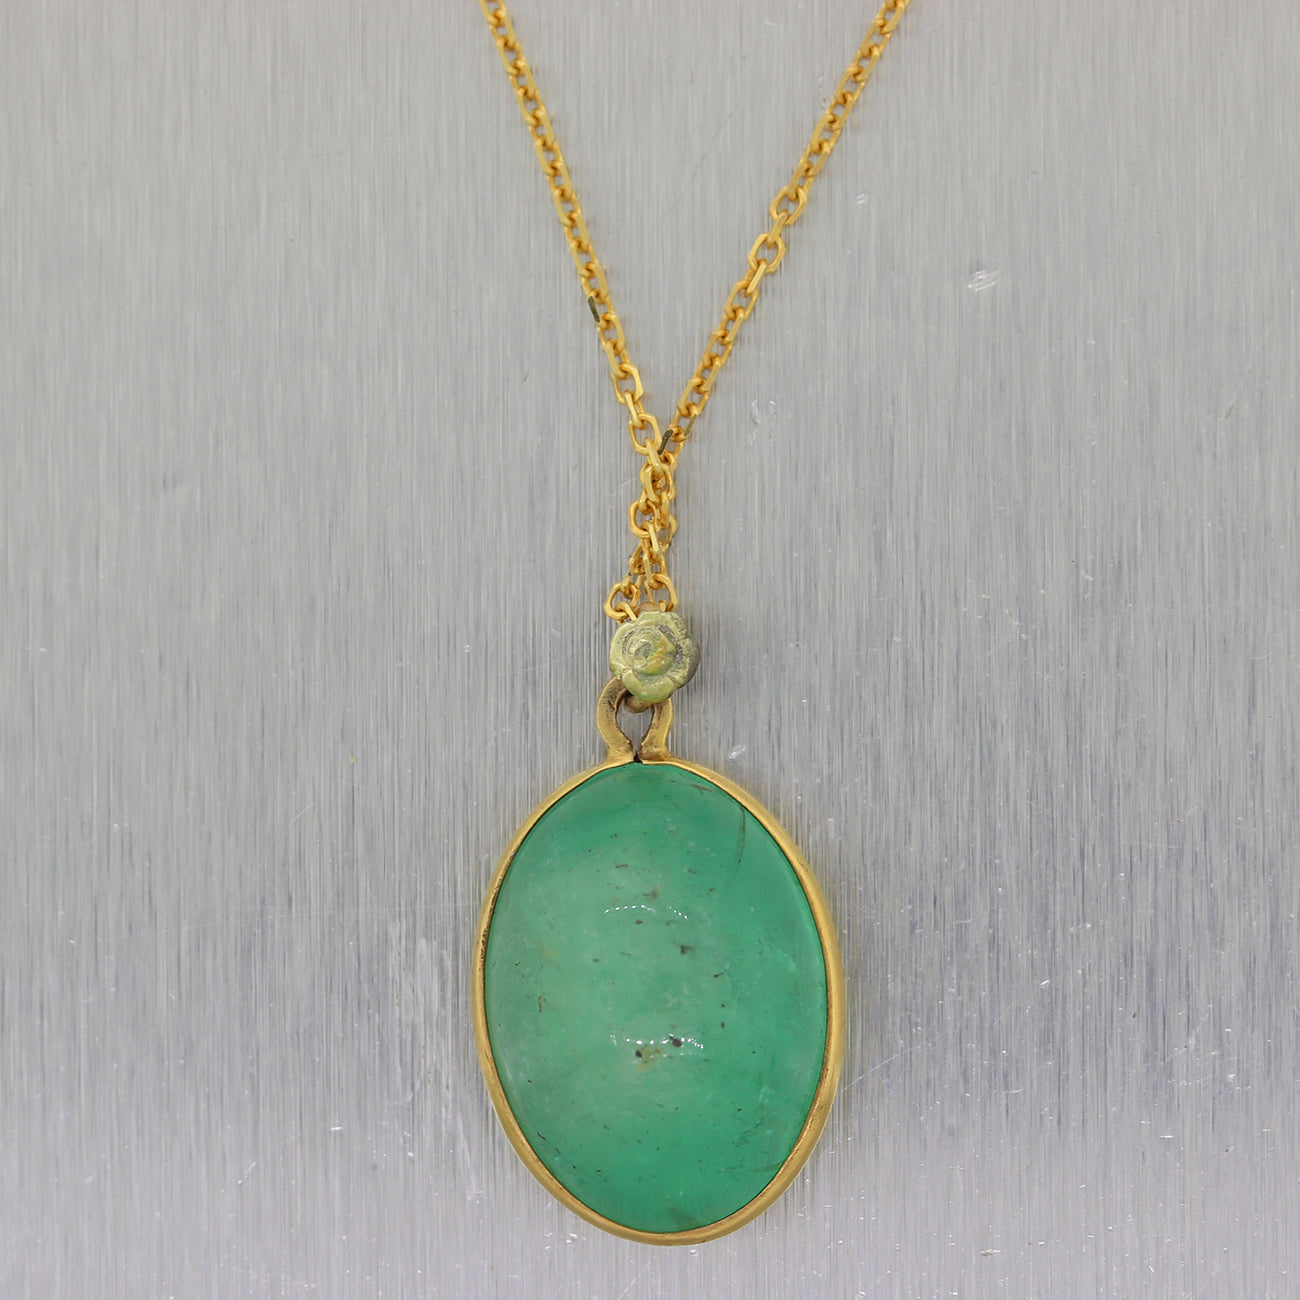 "Vintage Estate 14k Yellow Gold 42ct Natural Green Emerald 18"" Necklace"